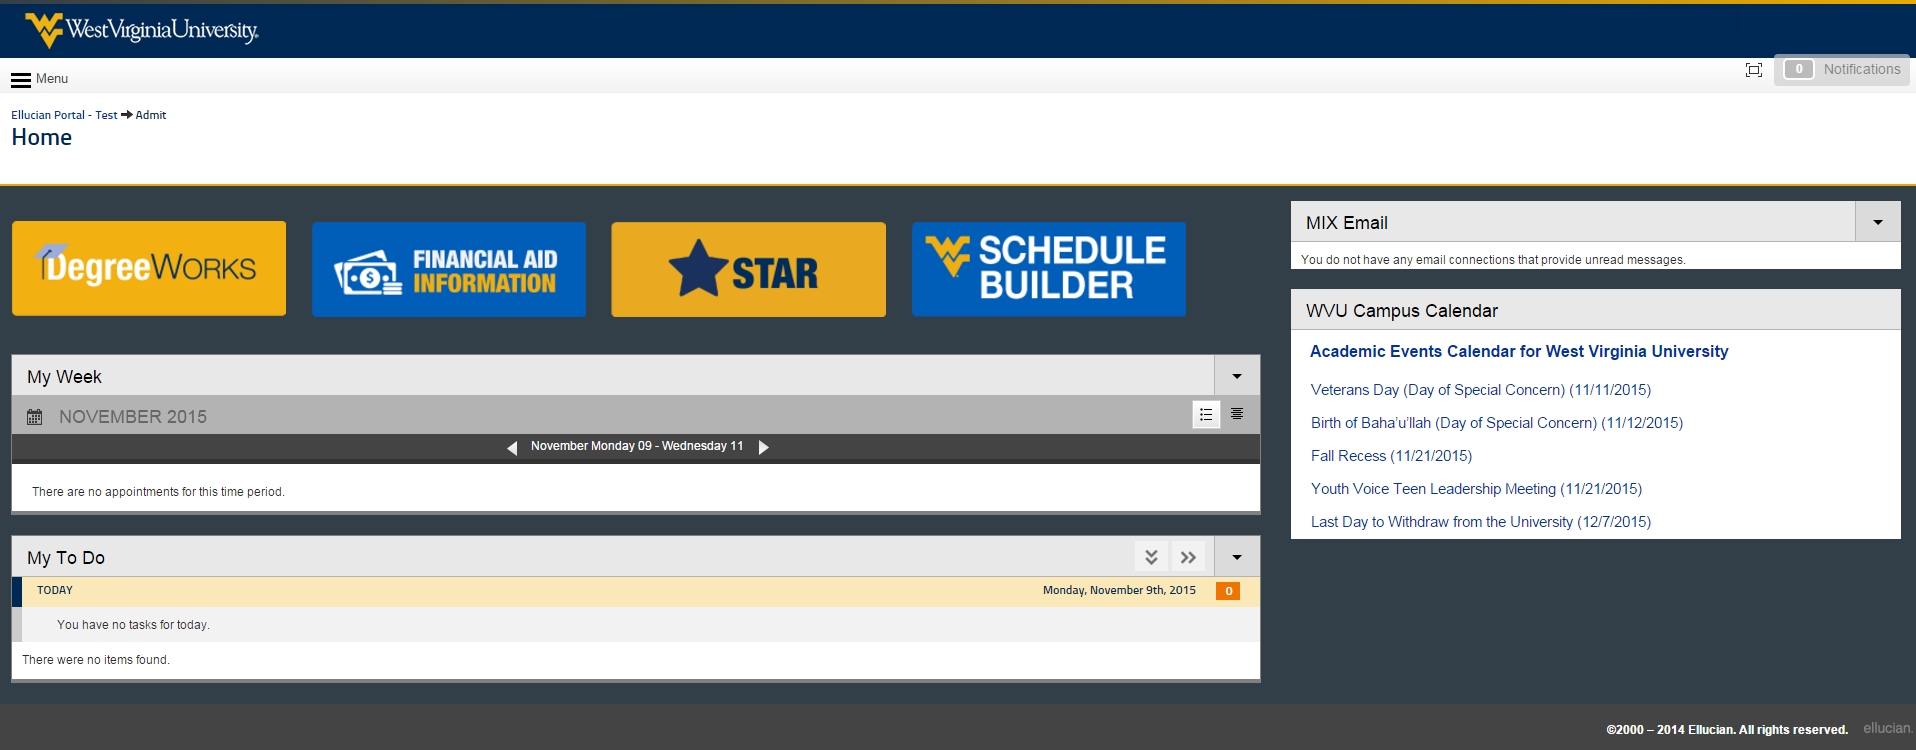 professional view of the admit portal